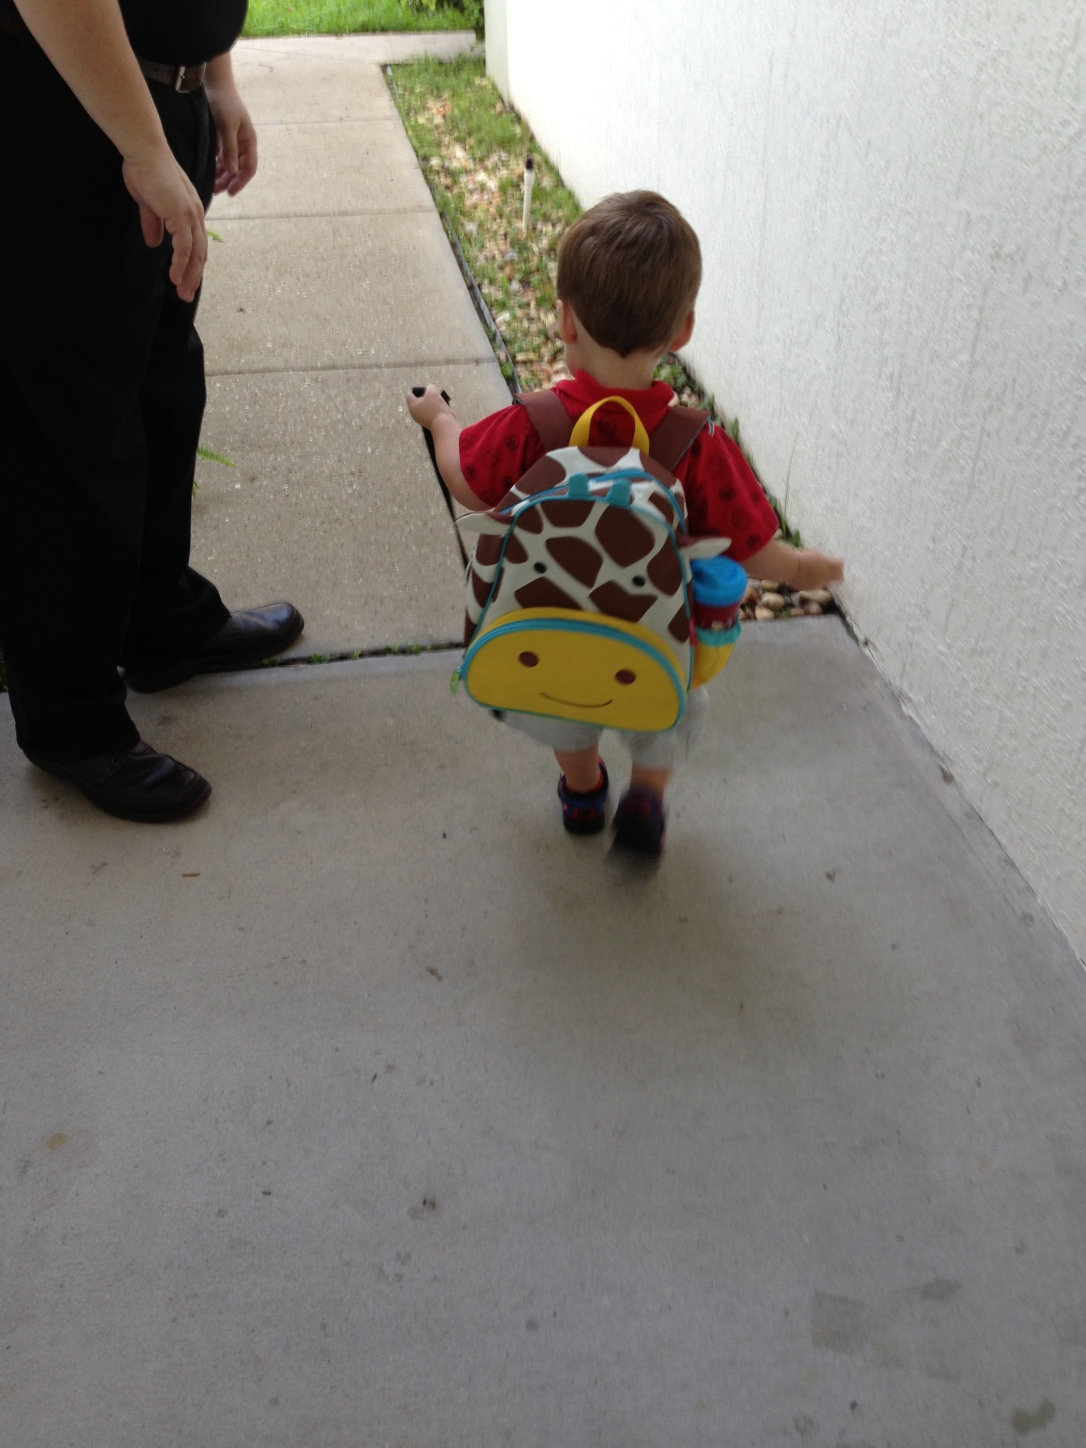 2013-07-29_1st day with backpack_2